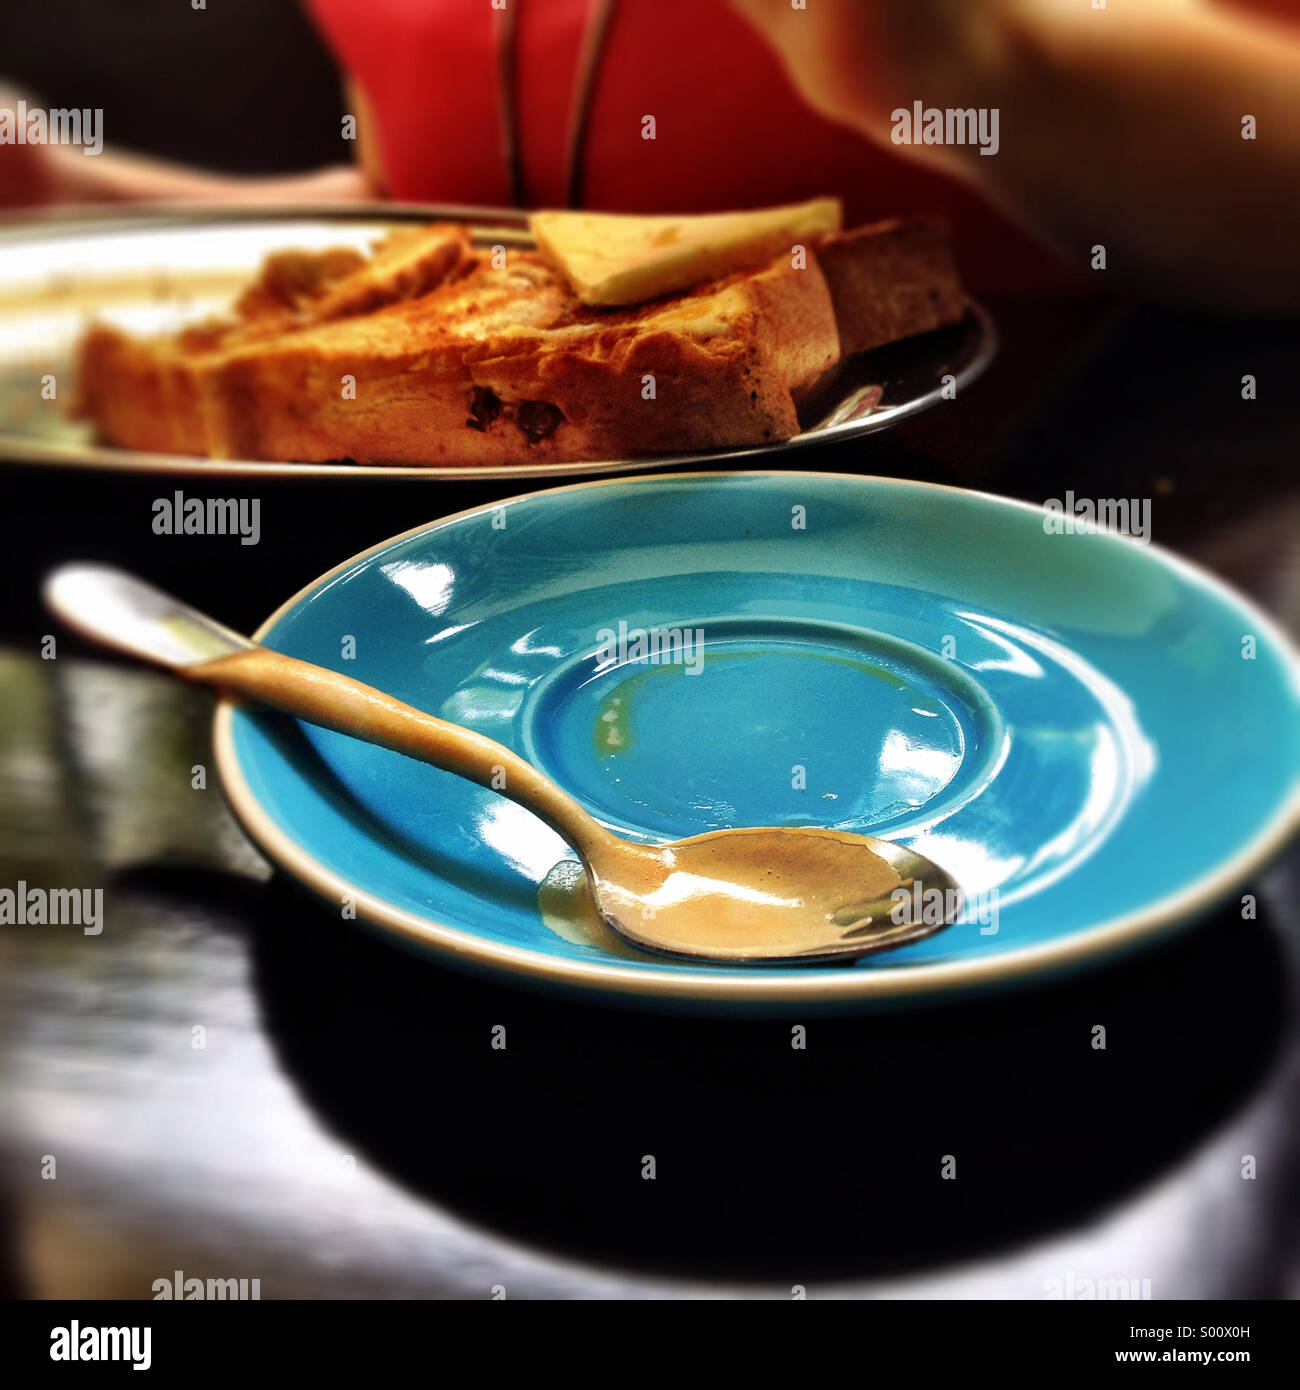 Coffee spoon on a saucer - Stock Image